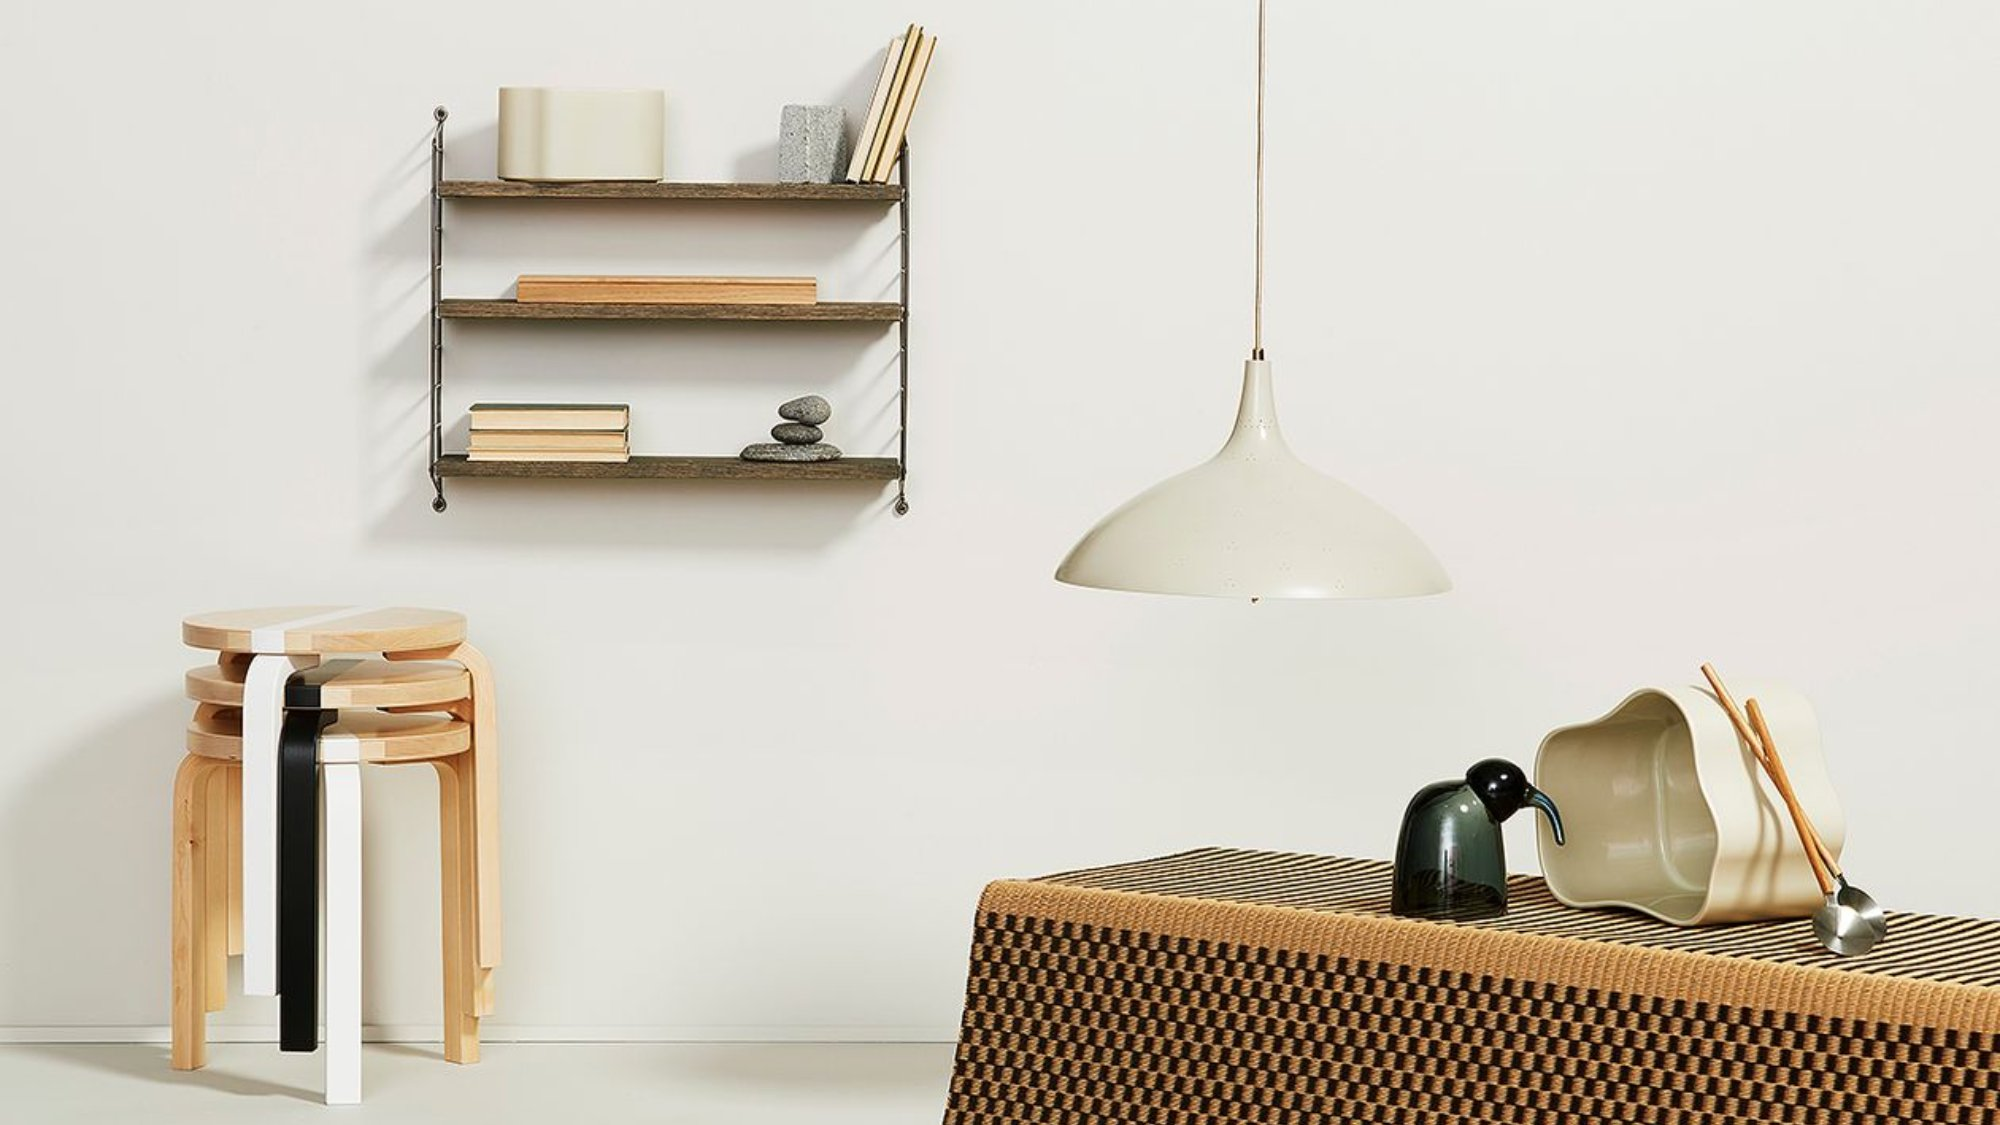 Nordic design is known for its classy simplicity and high quality.